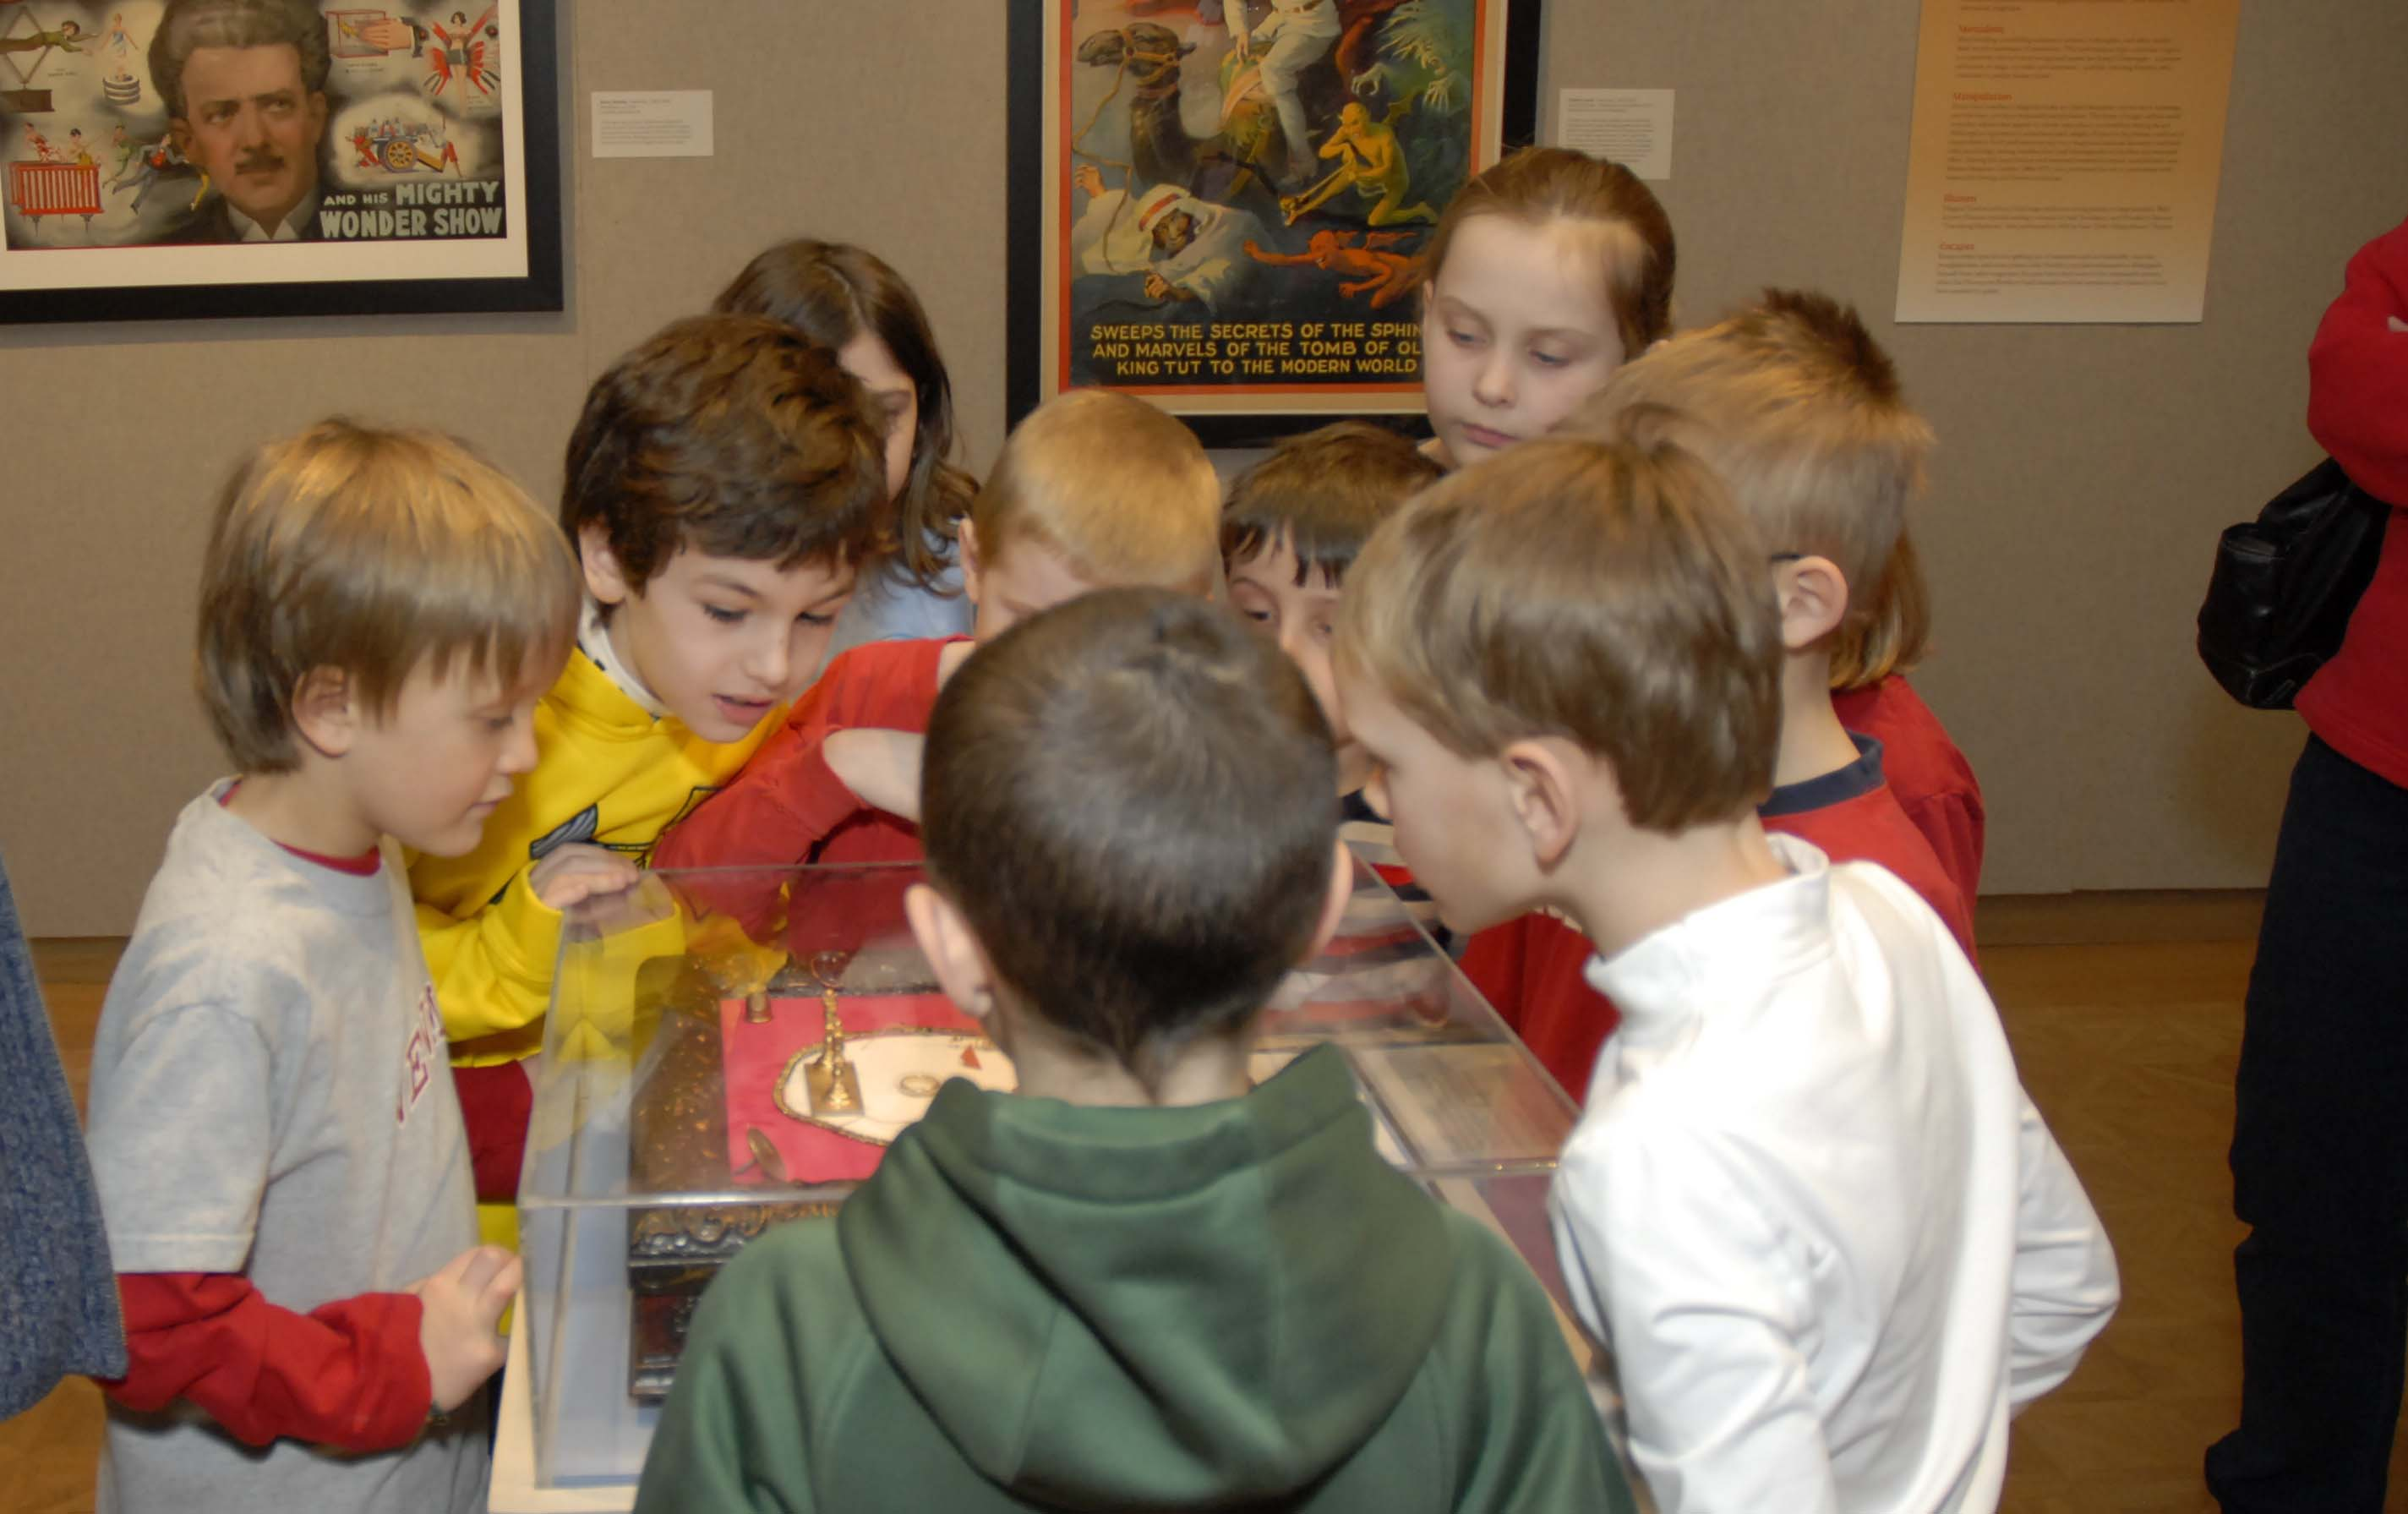 Children look at a flea circus display during the Mystery, Magic, & Mayhem exhibitions.